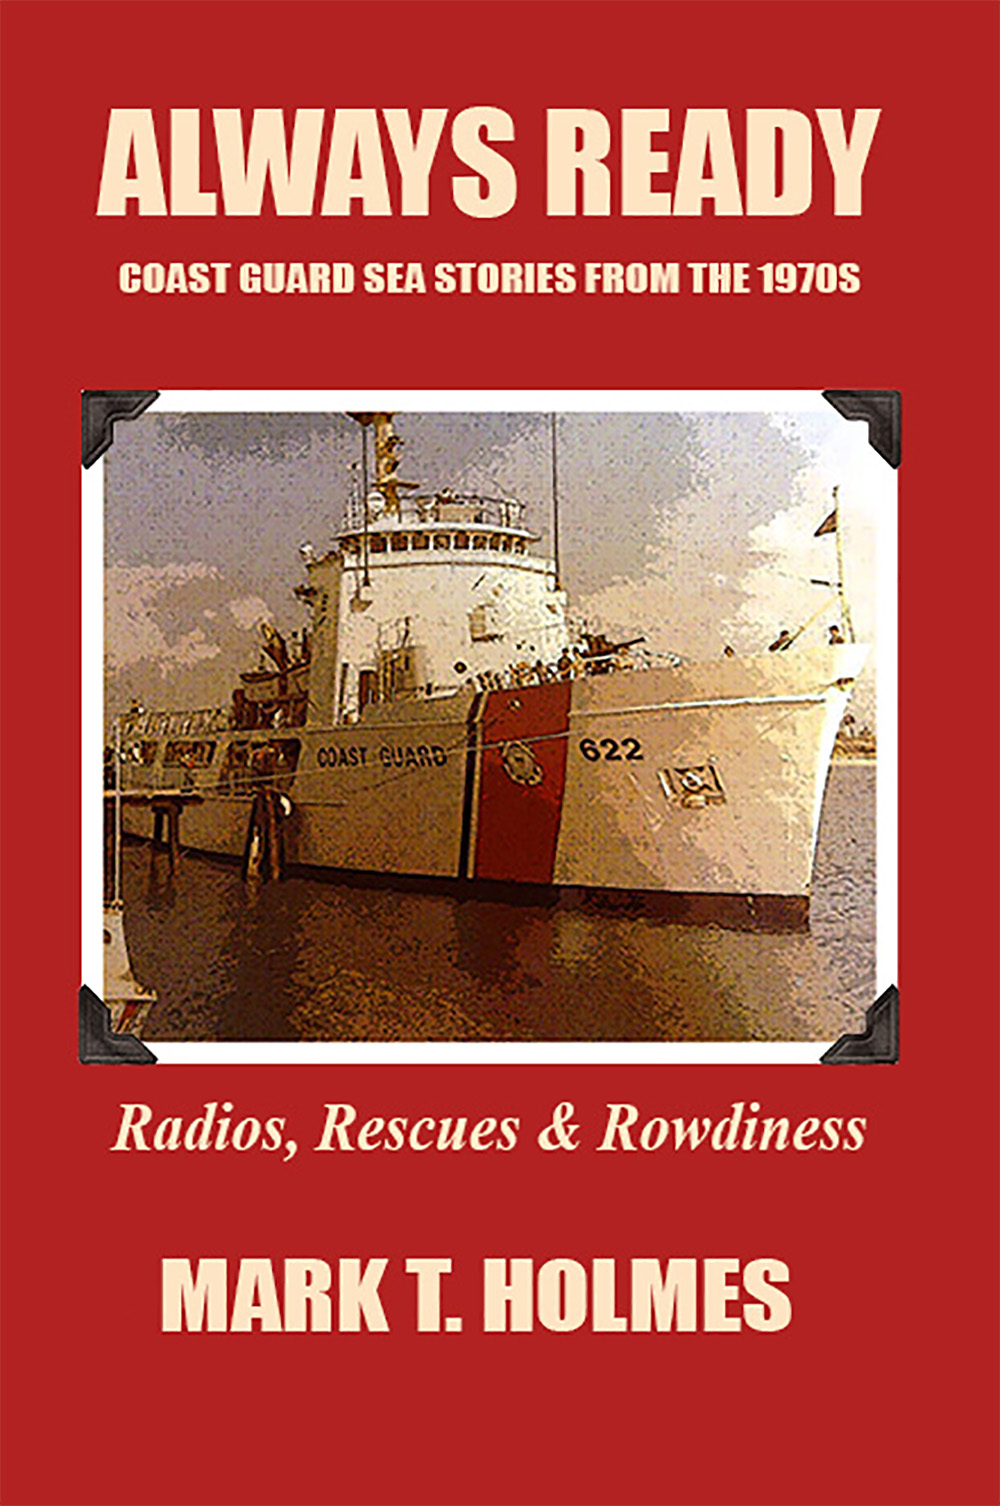 Always Ready – Coast Guard Sea Stories From the 1970's